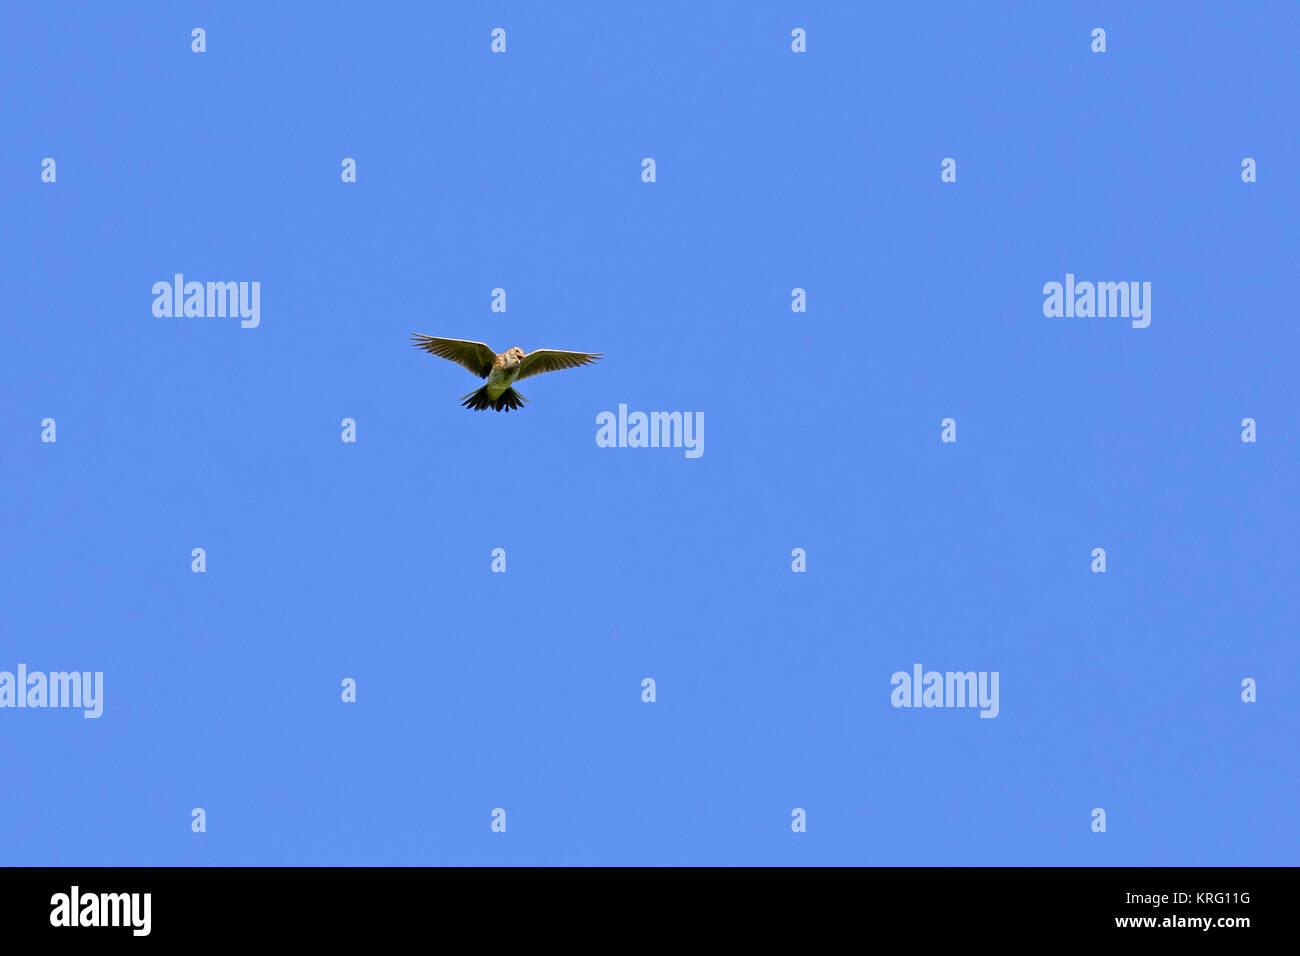 Singing Eurasian skylark / common skylark (Alauda arvensis) in flight against blue sky - Stock Image